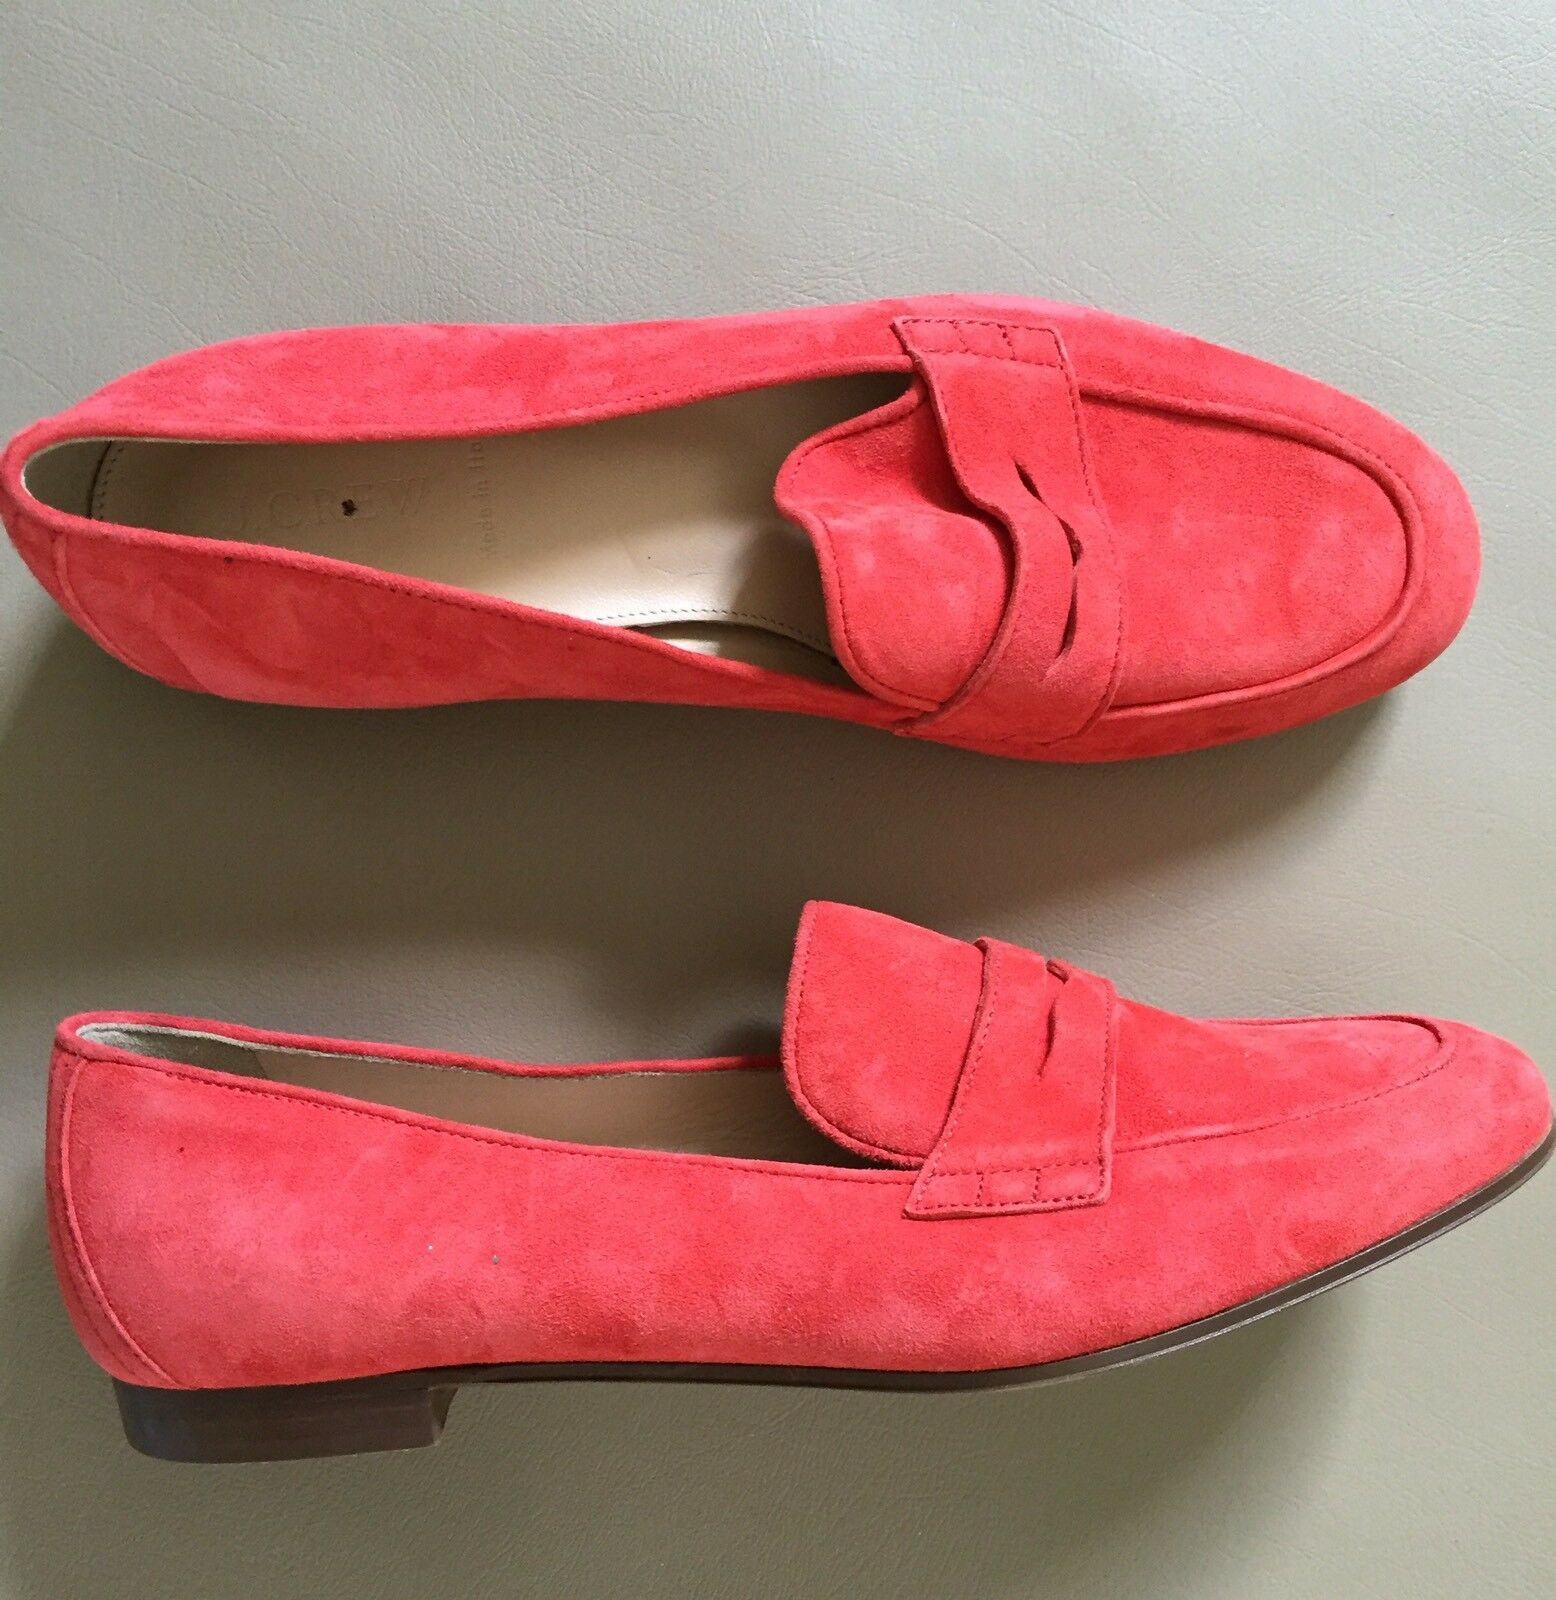 JCREW Charlie Penny Loafers in Suede Flats $168 7 Flame Red F5592 SOLDOUT!